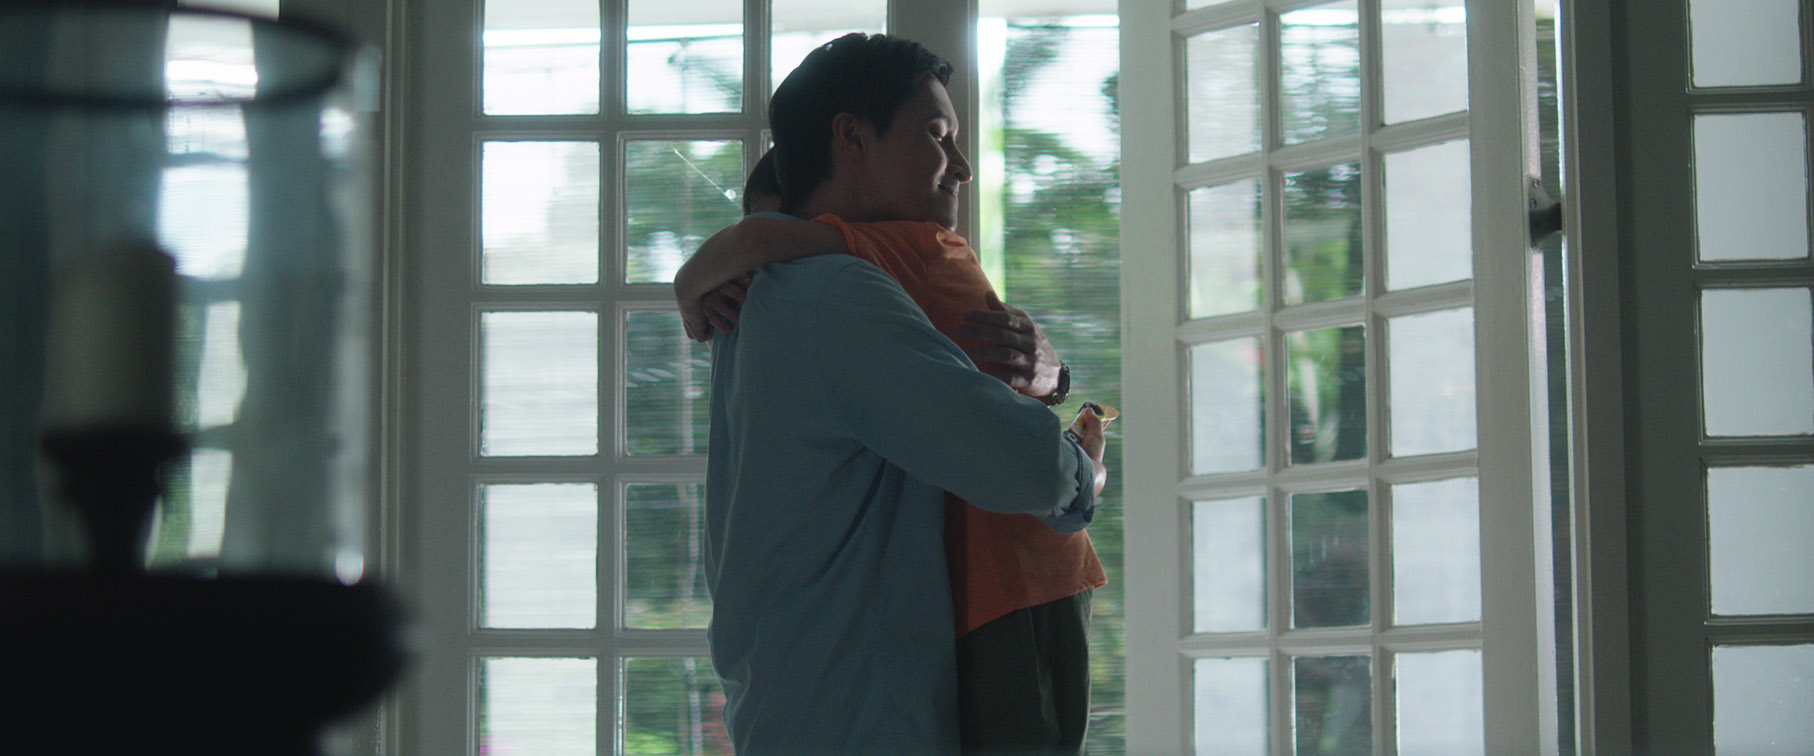 electriclimefilms and Keko Singapore tell a story of kinship in Porsche's new film with Shell